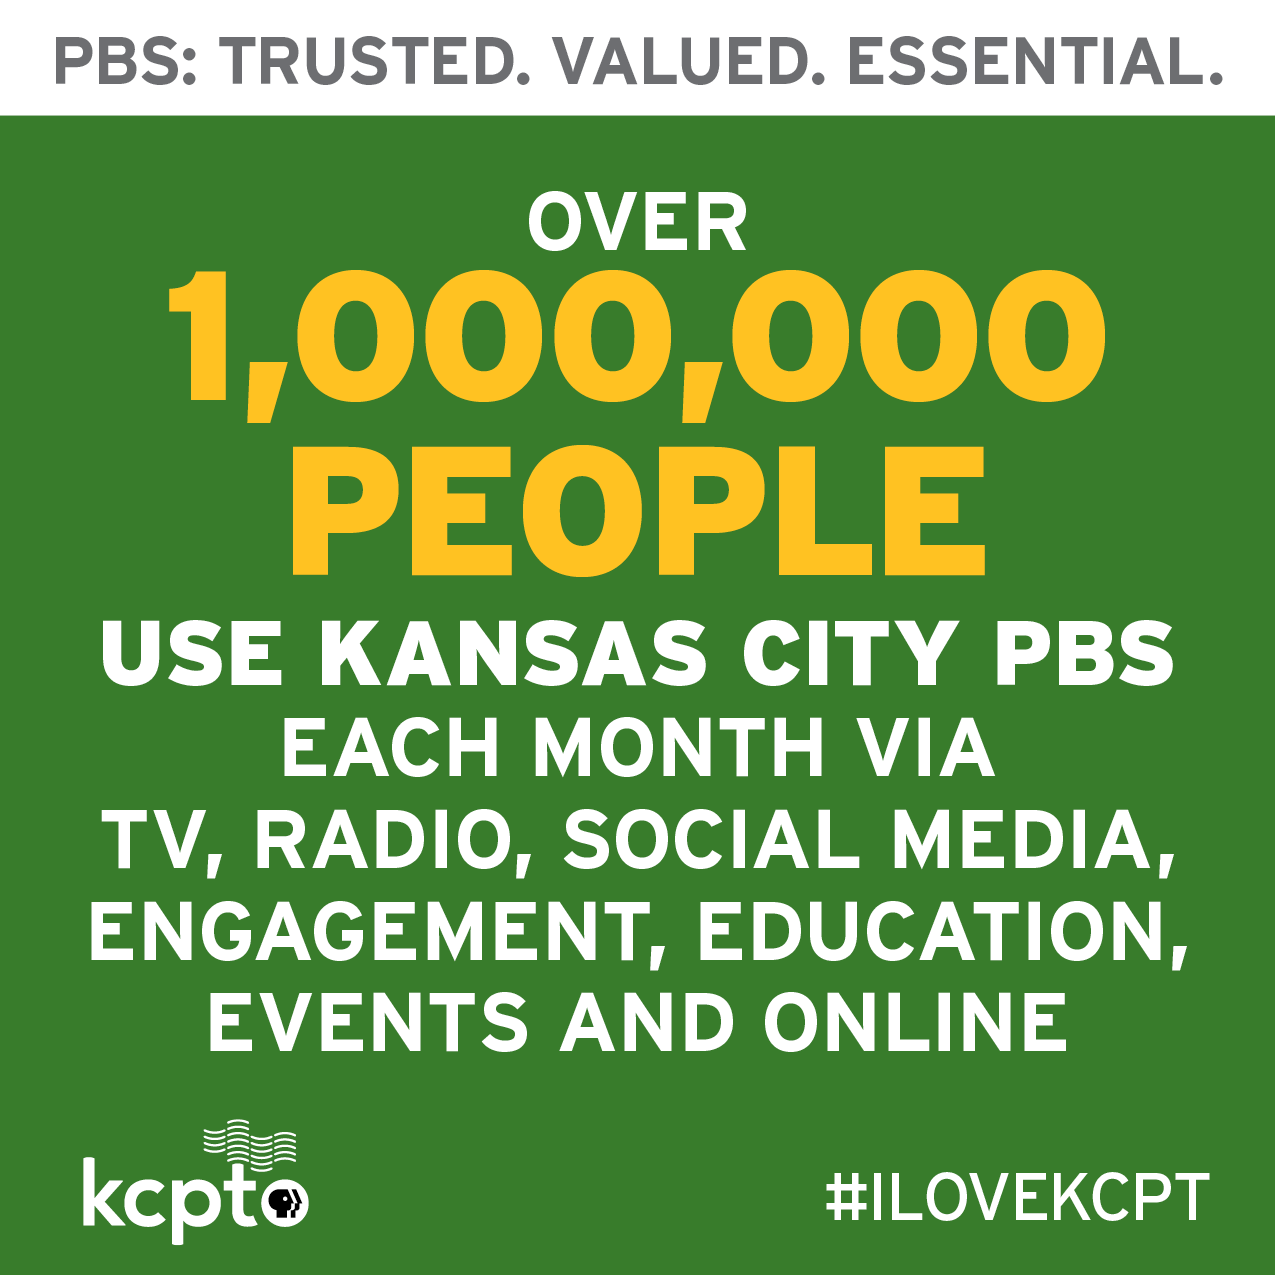 Over a million people use KCPT each month.